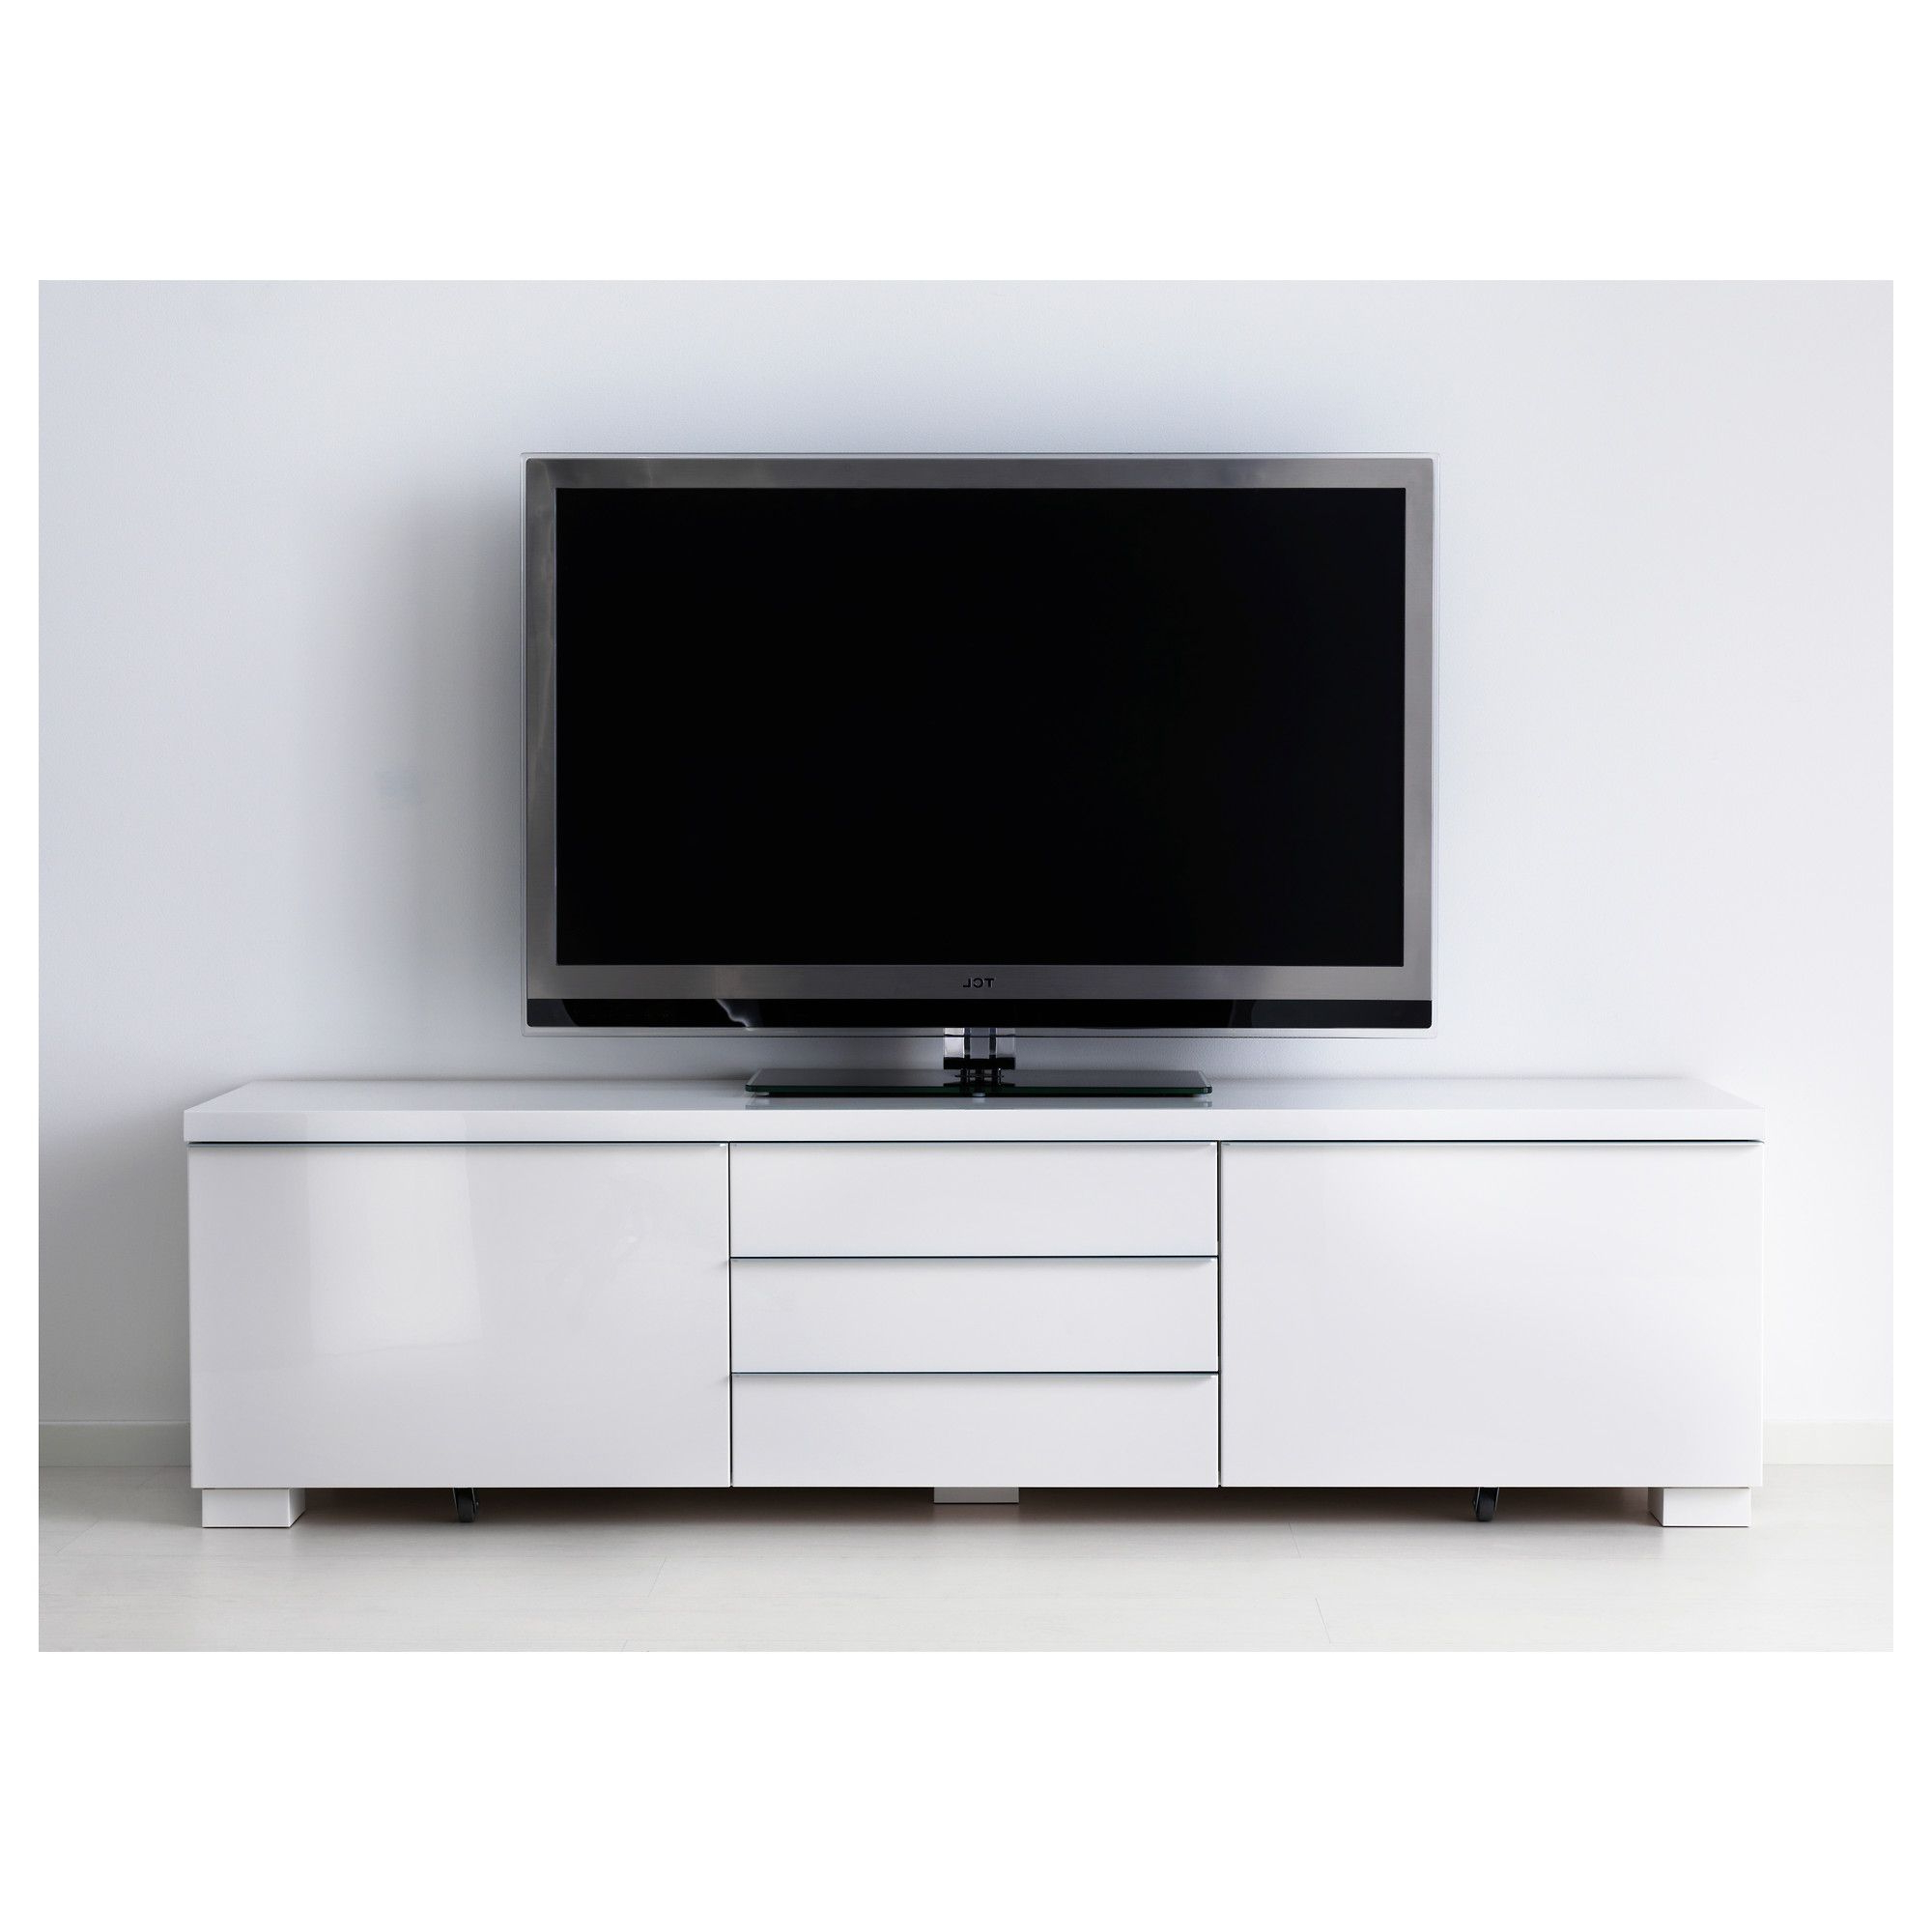 Preferred Bestå Burs Tv Bench High Gloss White 180 X 41 X 49 Cm (Gallery 11 of 20)